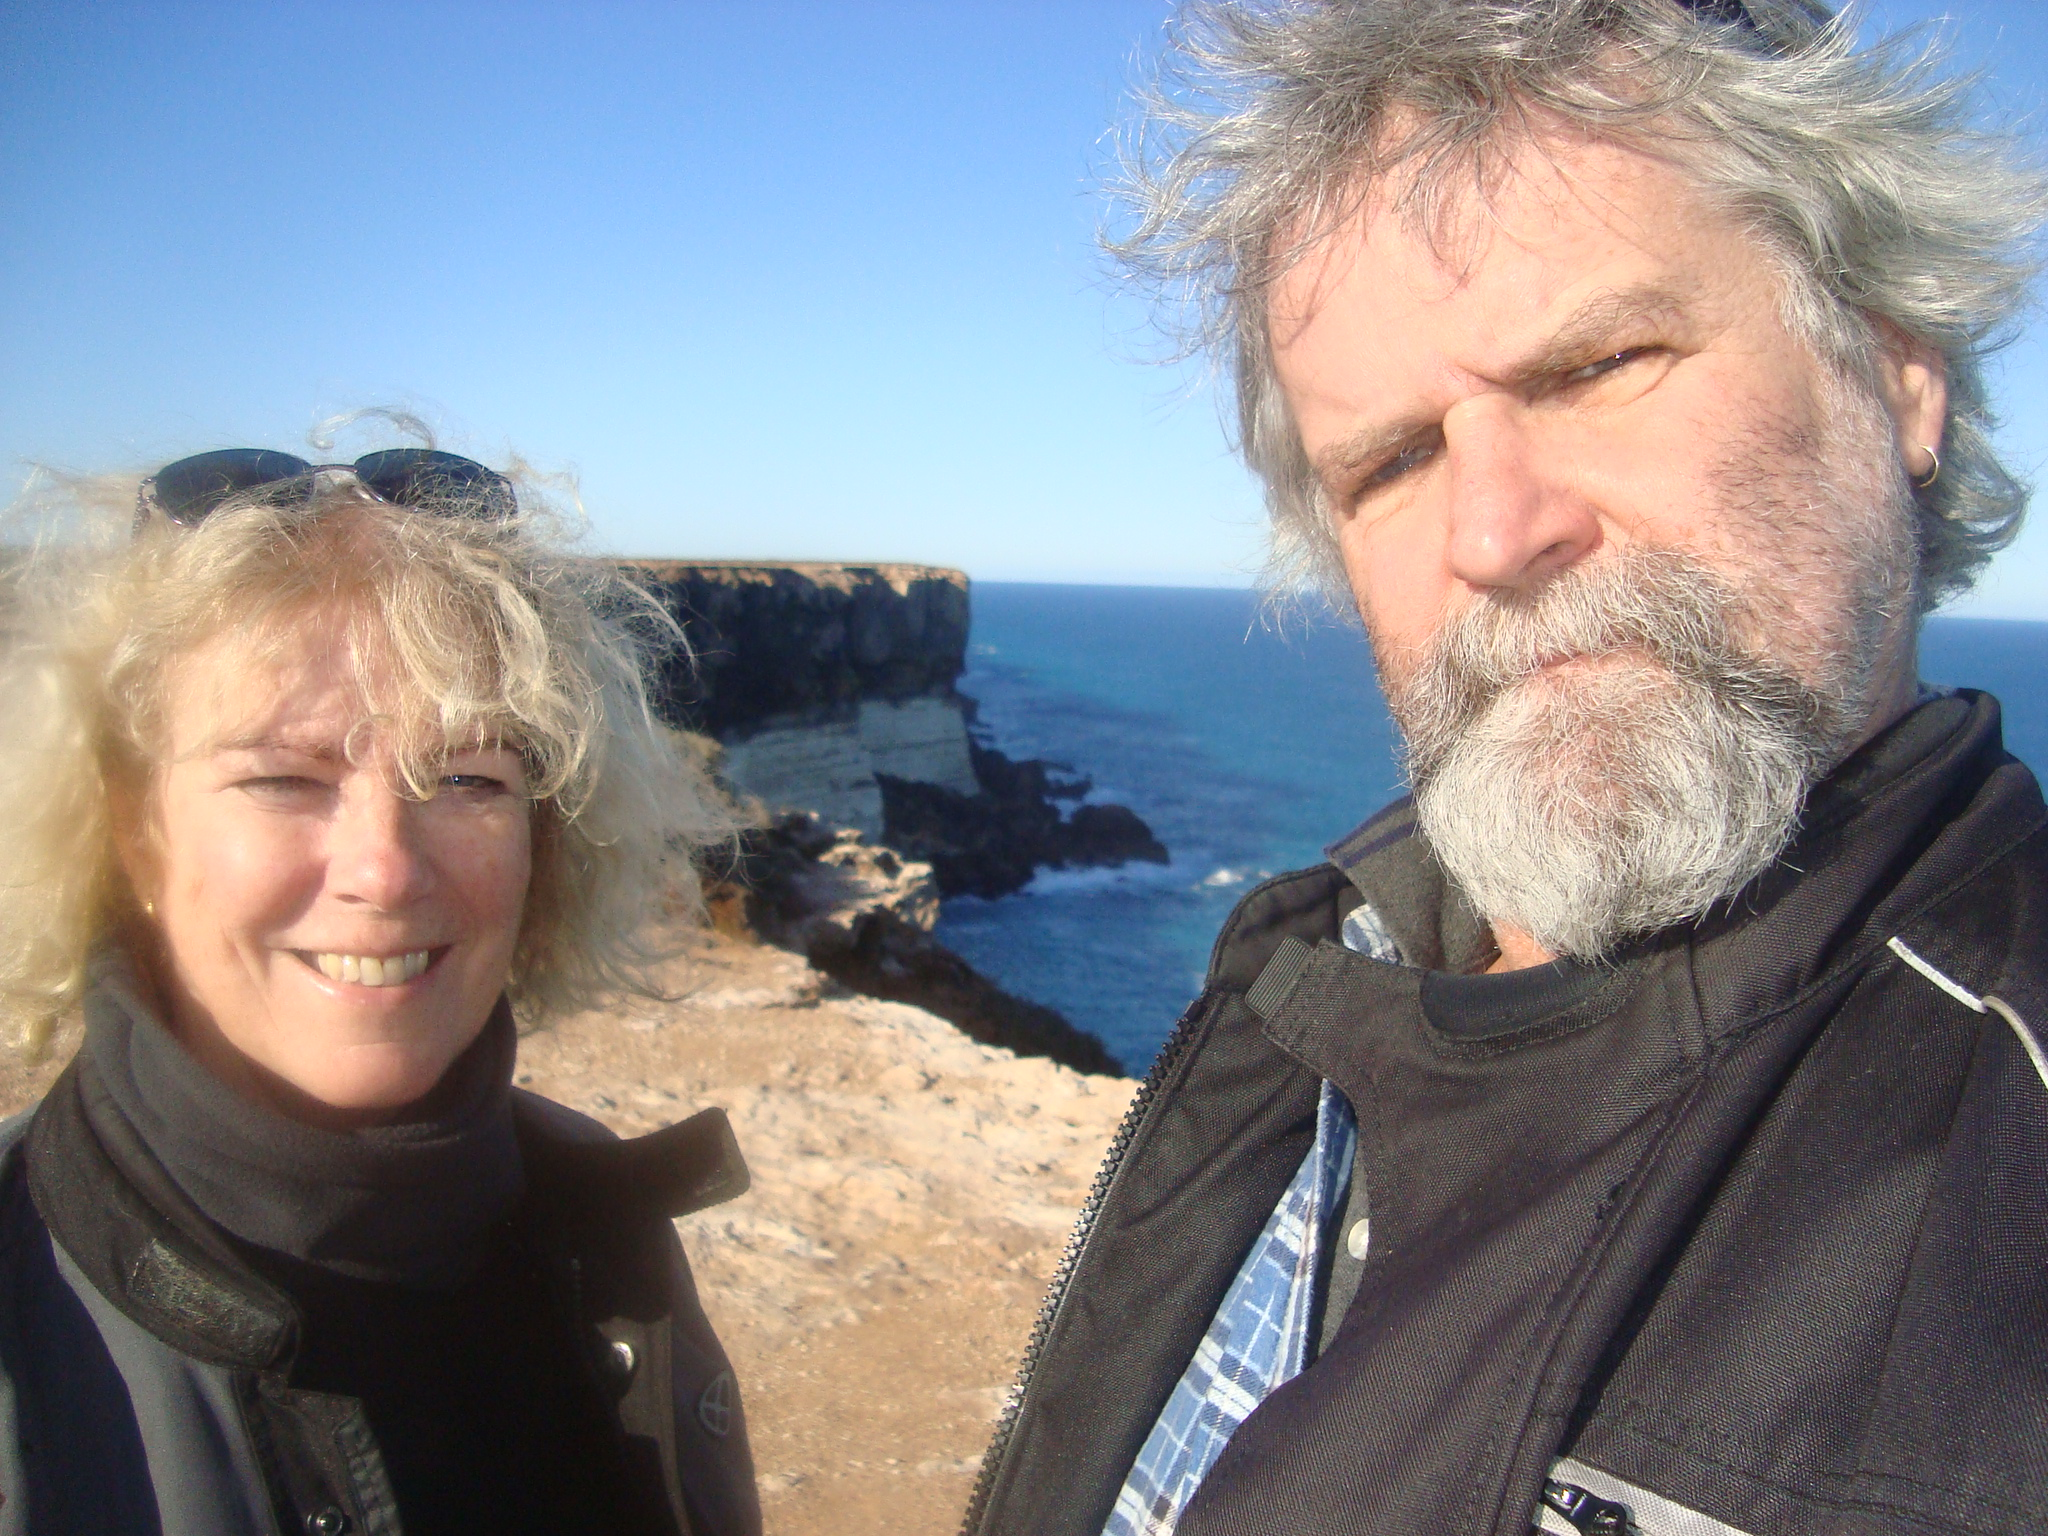 Lynne and Steve at the great Australian Bight/Lynne Oakes